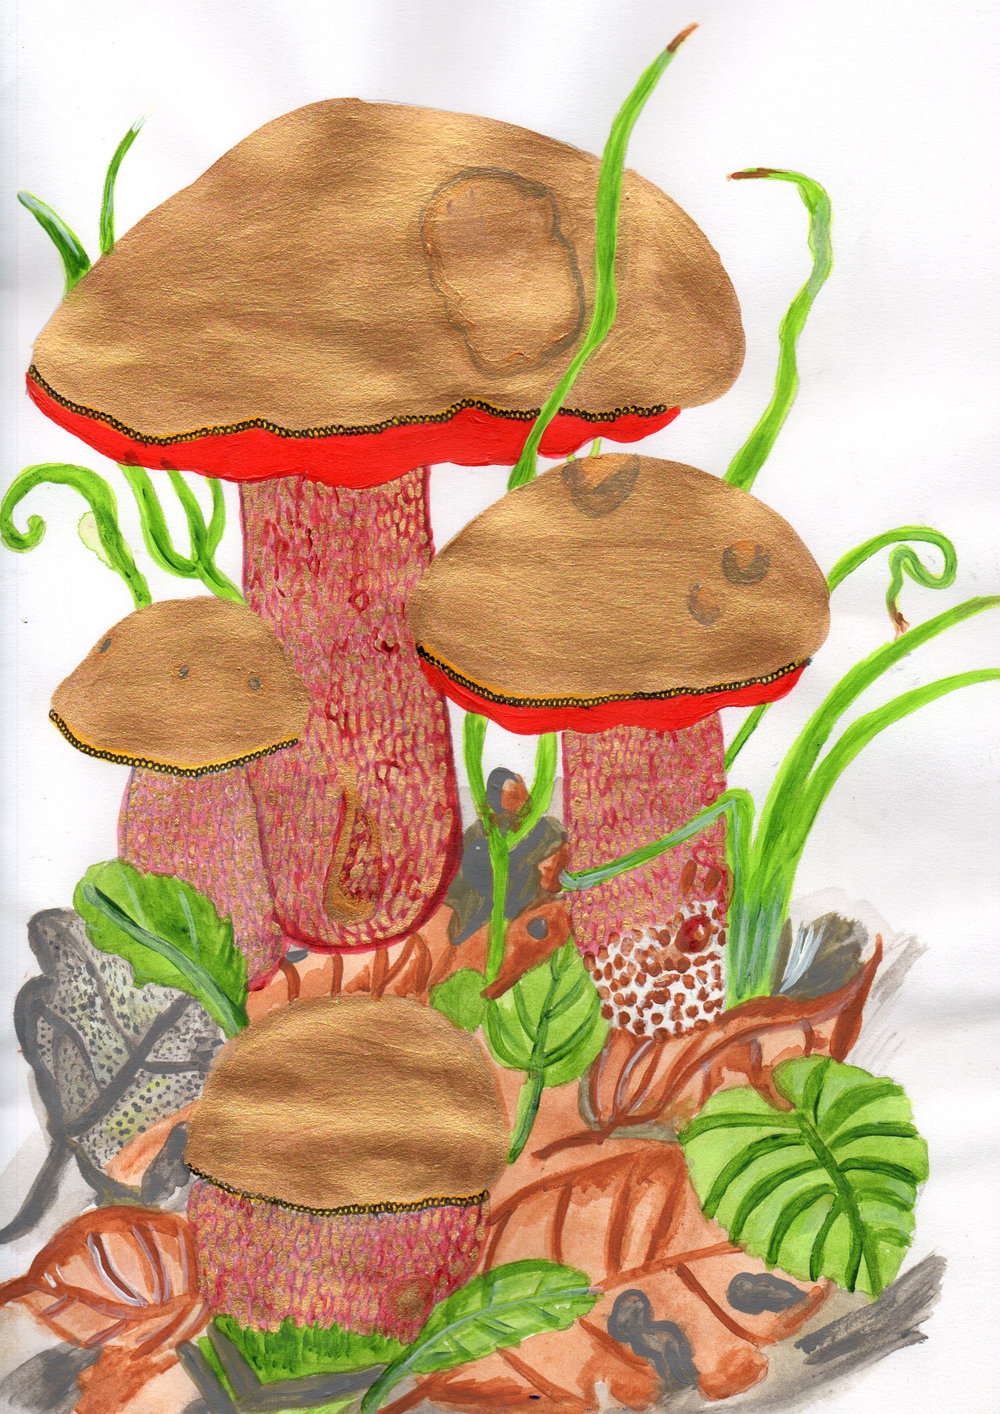 Mushrooms20180520_10570915.jpg